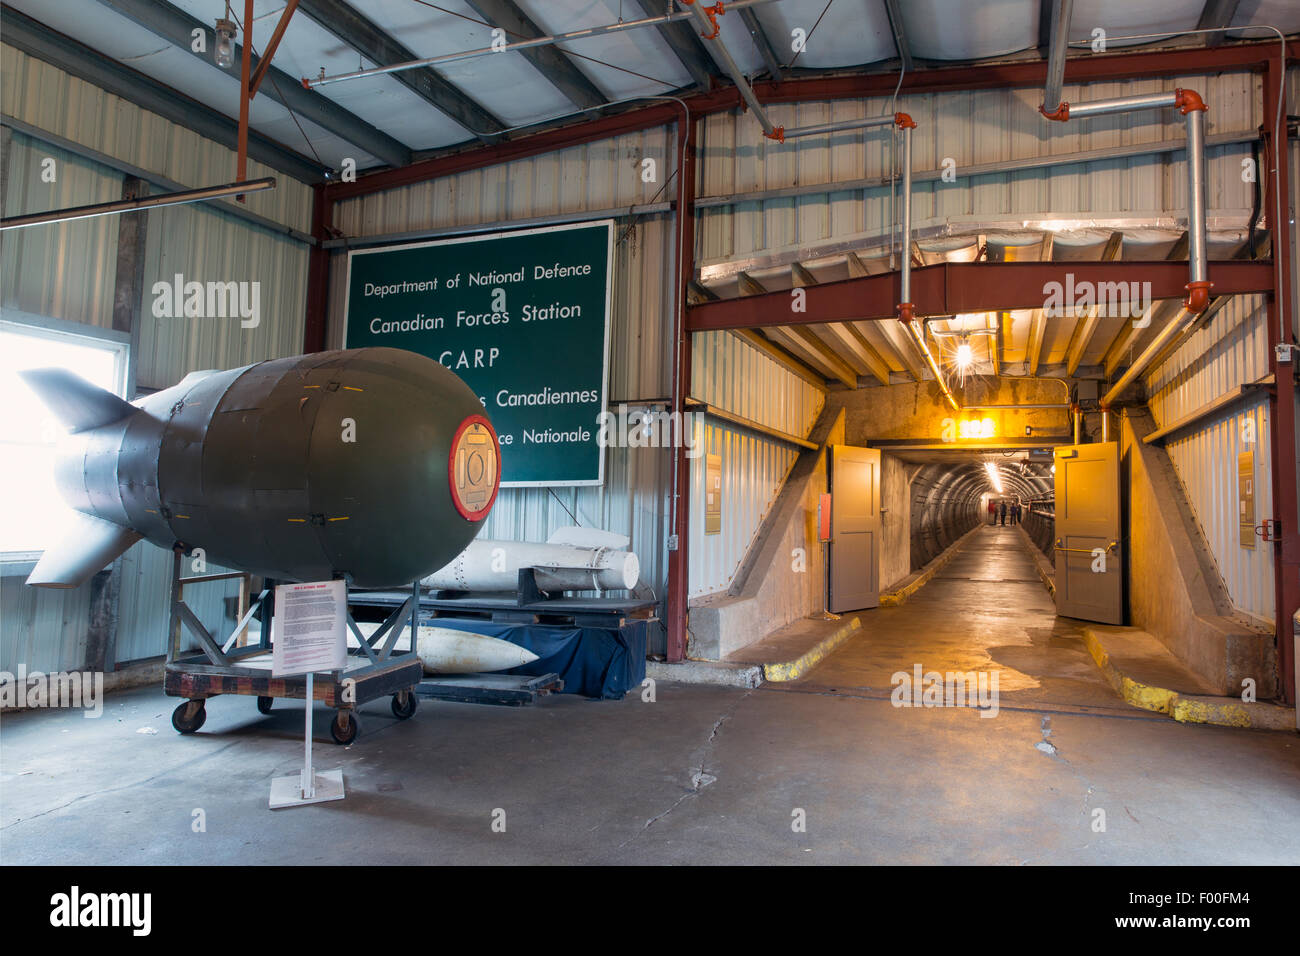 Canada,Ontario,Carp,Diefenbunker, Canada's Cold War Museum,atom bomb and blast tunnel - Stock Image